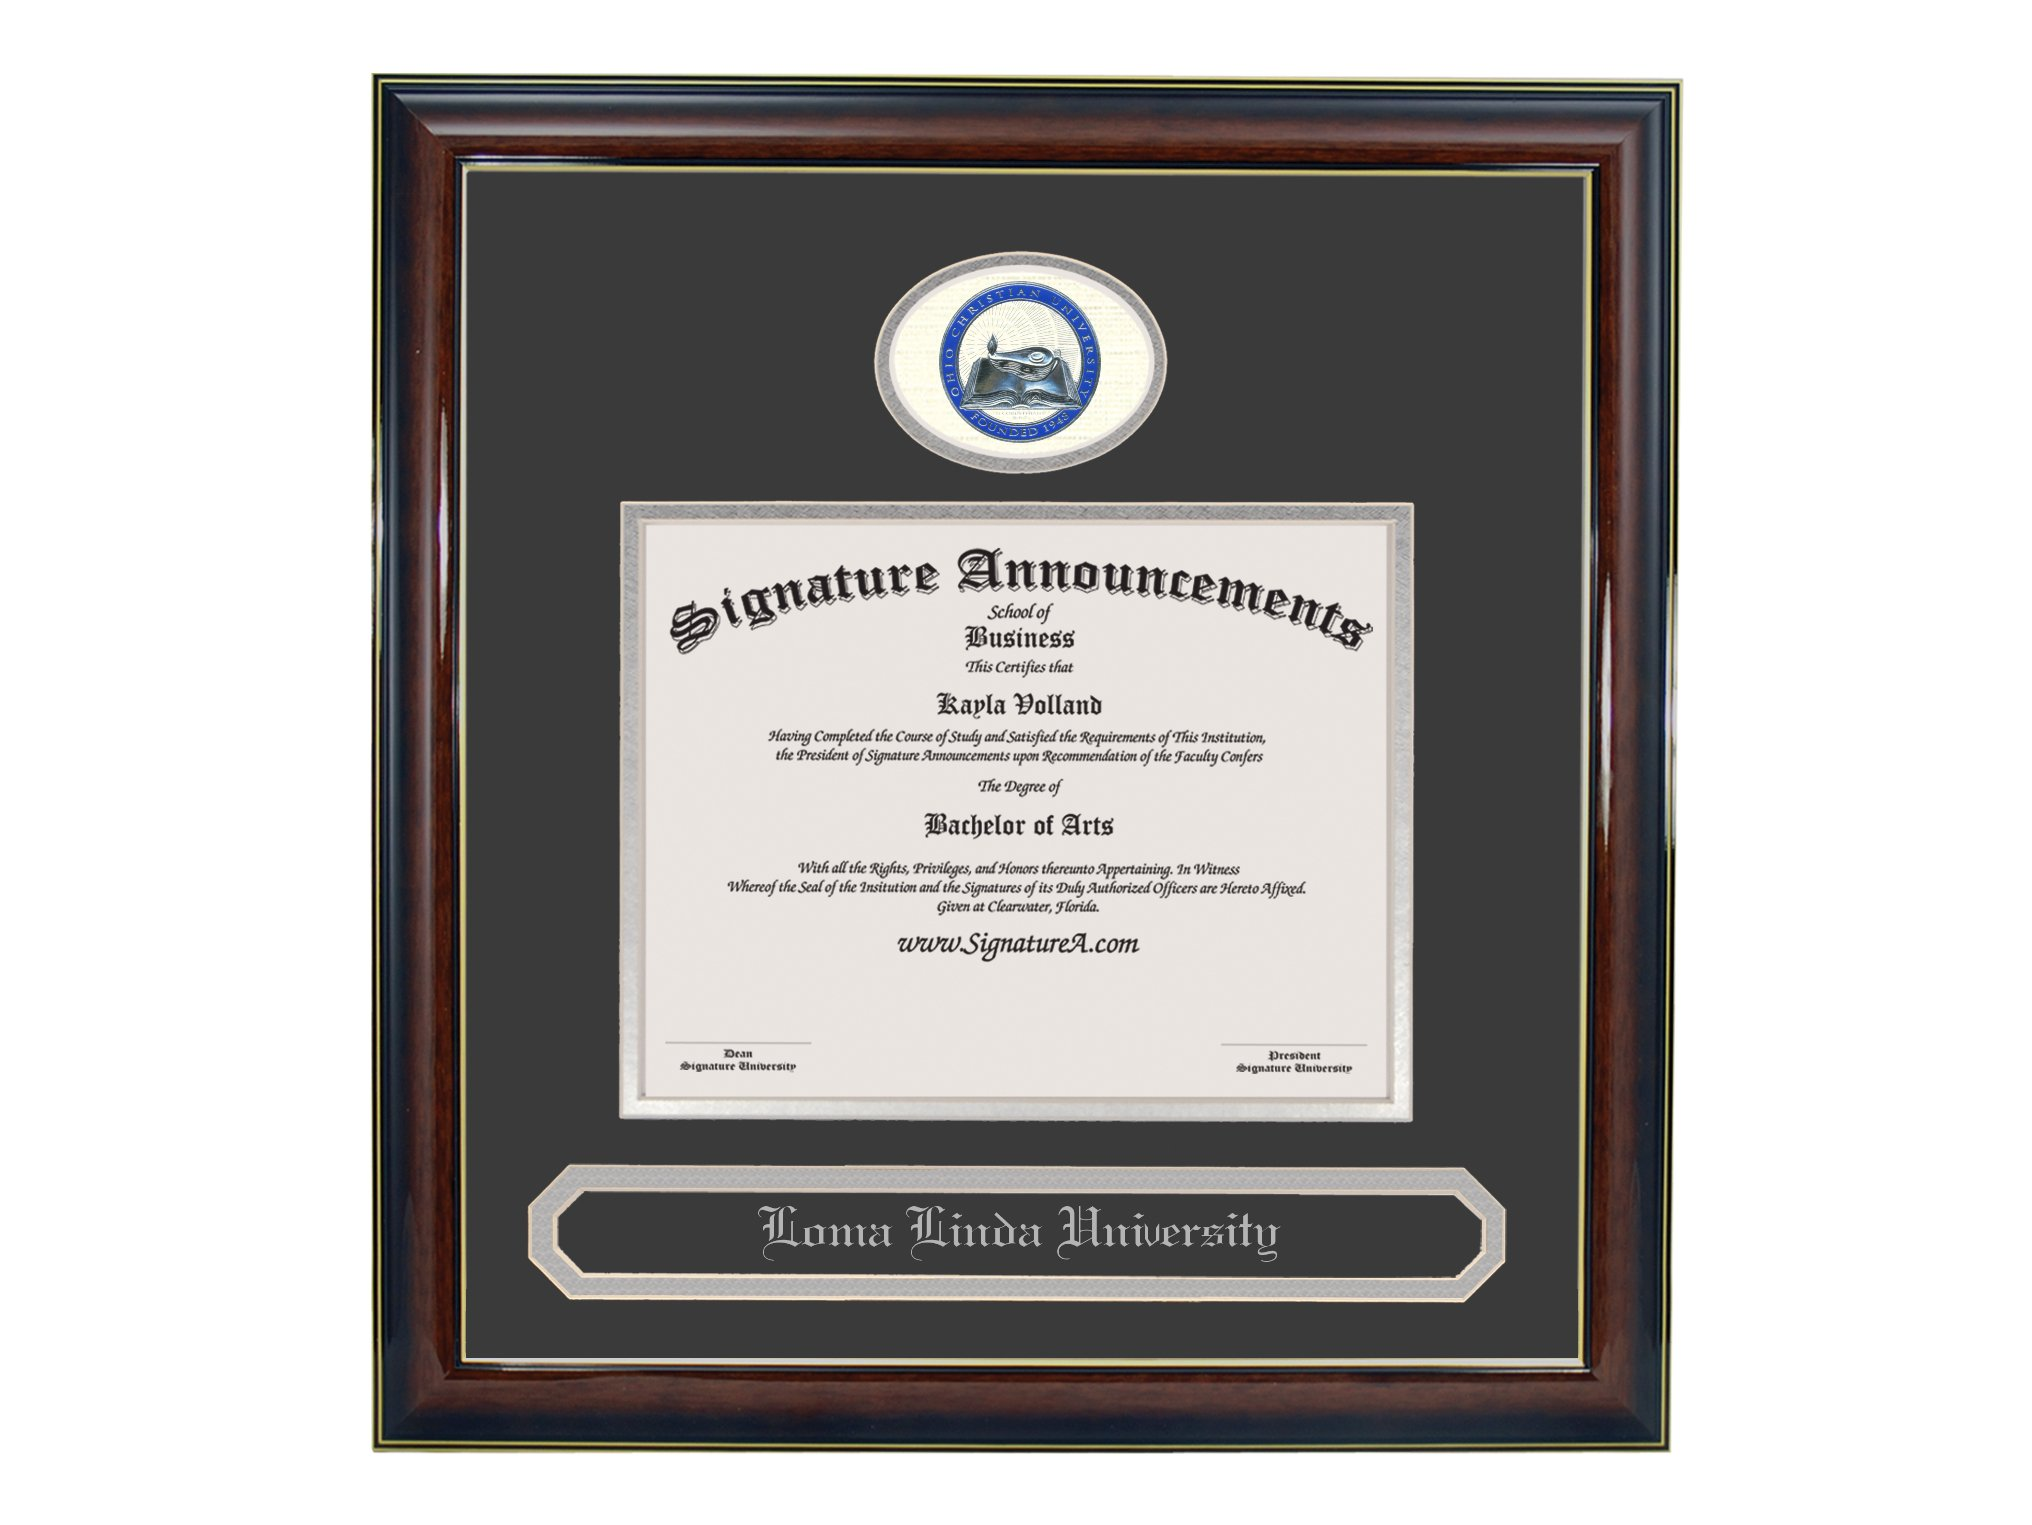 Signature Announcements Ohio-Christian-University Undergraduate, Graduate/Professional/Doctor Sculpted Foil Seal & Name Diploma Frame, 16'' x 16'', Gold Accent Gloss Mahogany